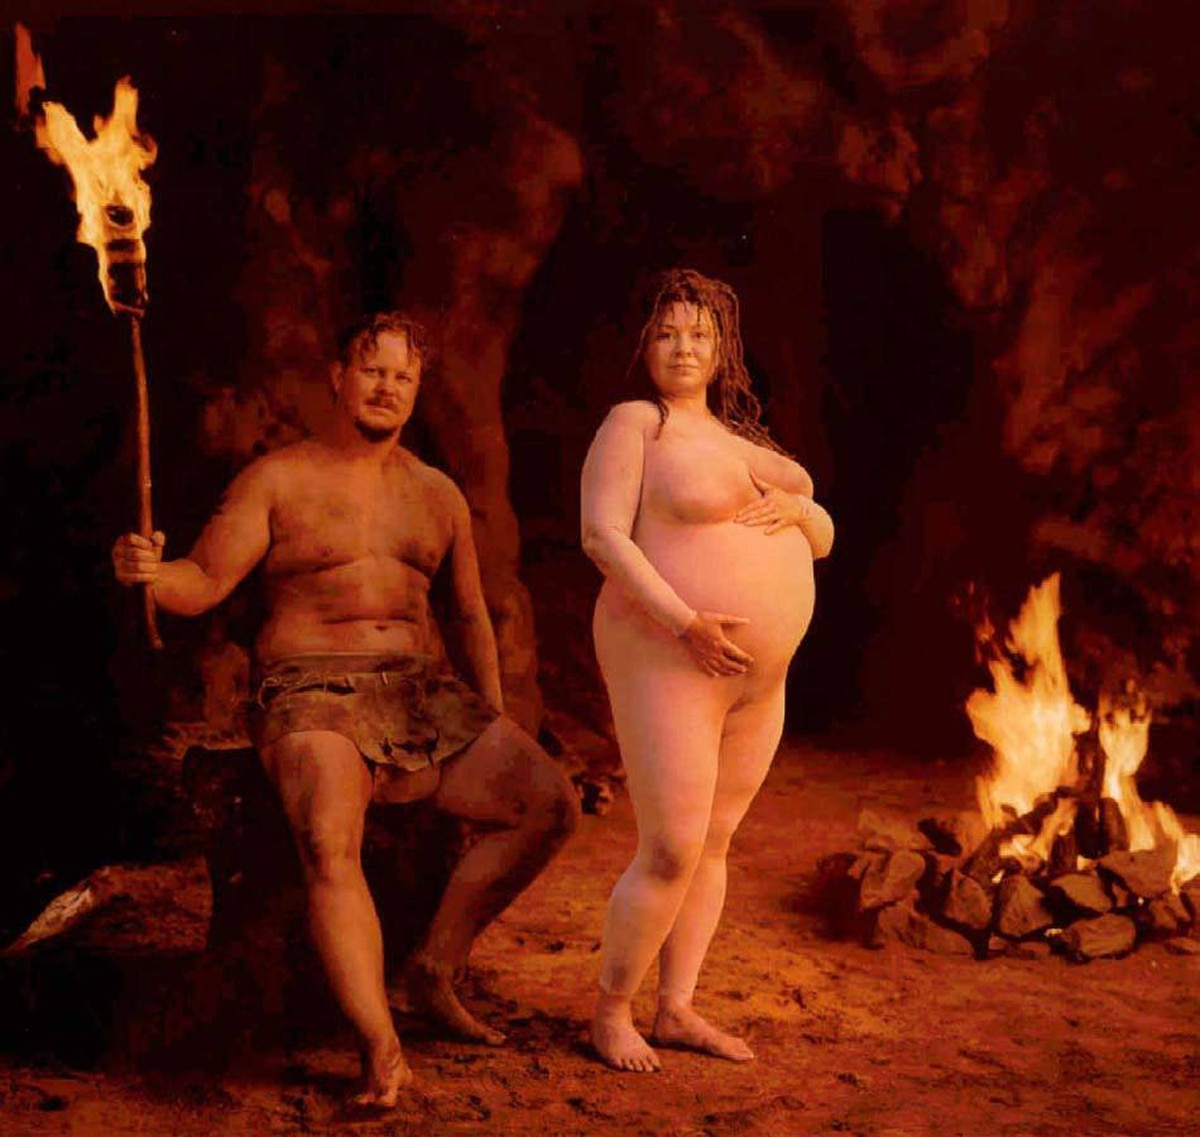 Five years later, pregnant celebrity exploitation moved on to its post-modern phase when TV sitcom star Roseanne Barr appeared with husband Ben Thomas in the September issue of Vanity Fair in another photo by Annie Liebovitz.